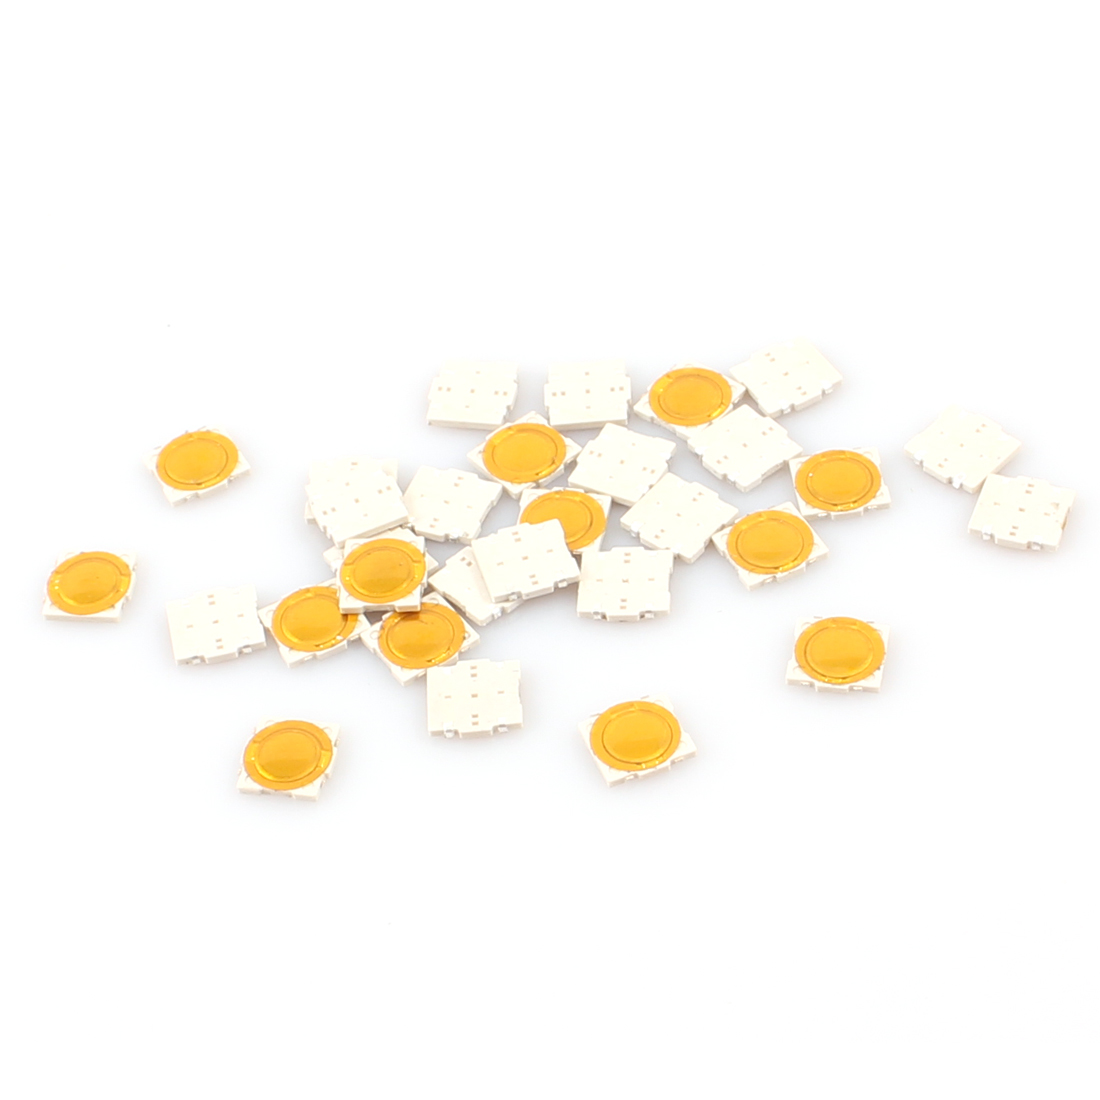 30 Pcs 4x4x0.5mm 4Pin Momentary Push Button PCB SMD SMT Tactile Tact Switch